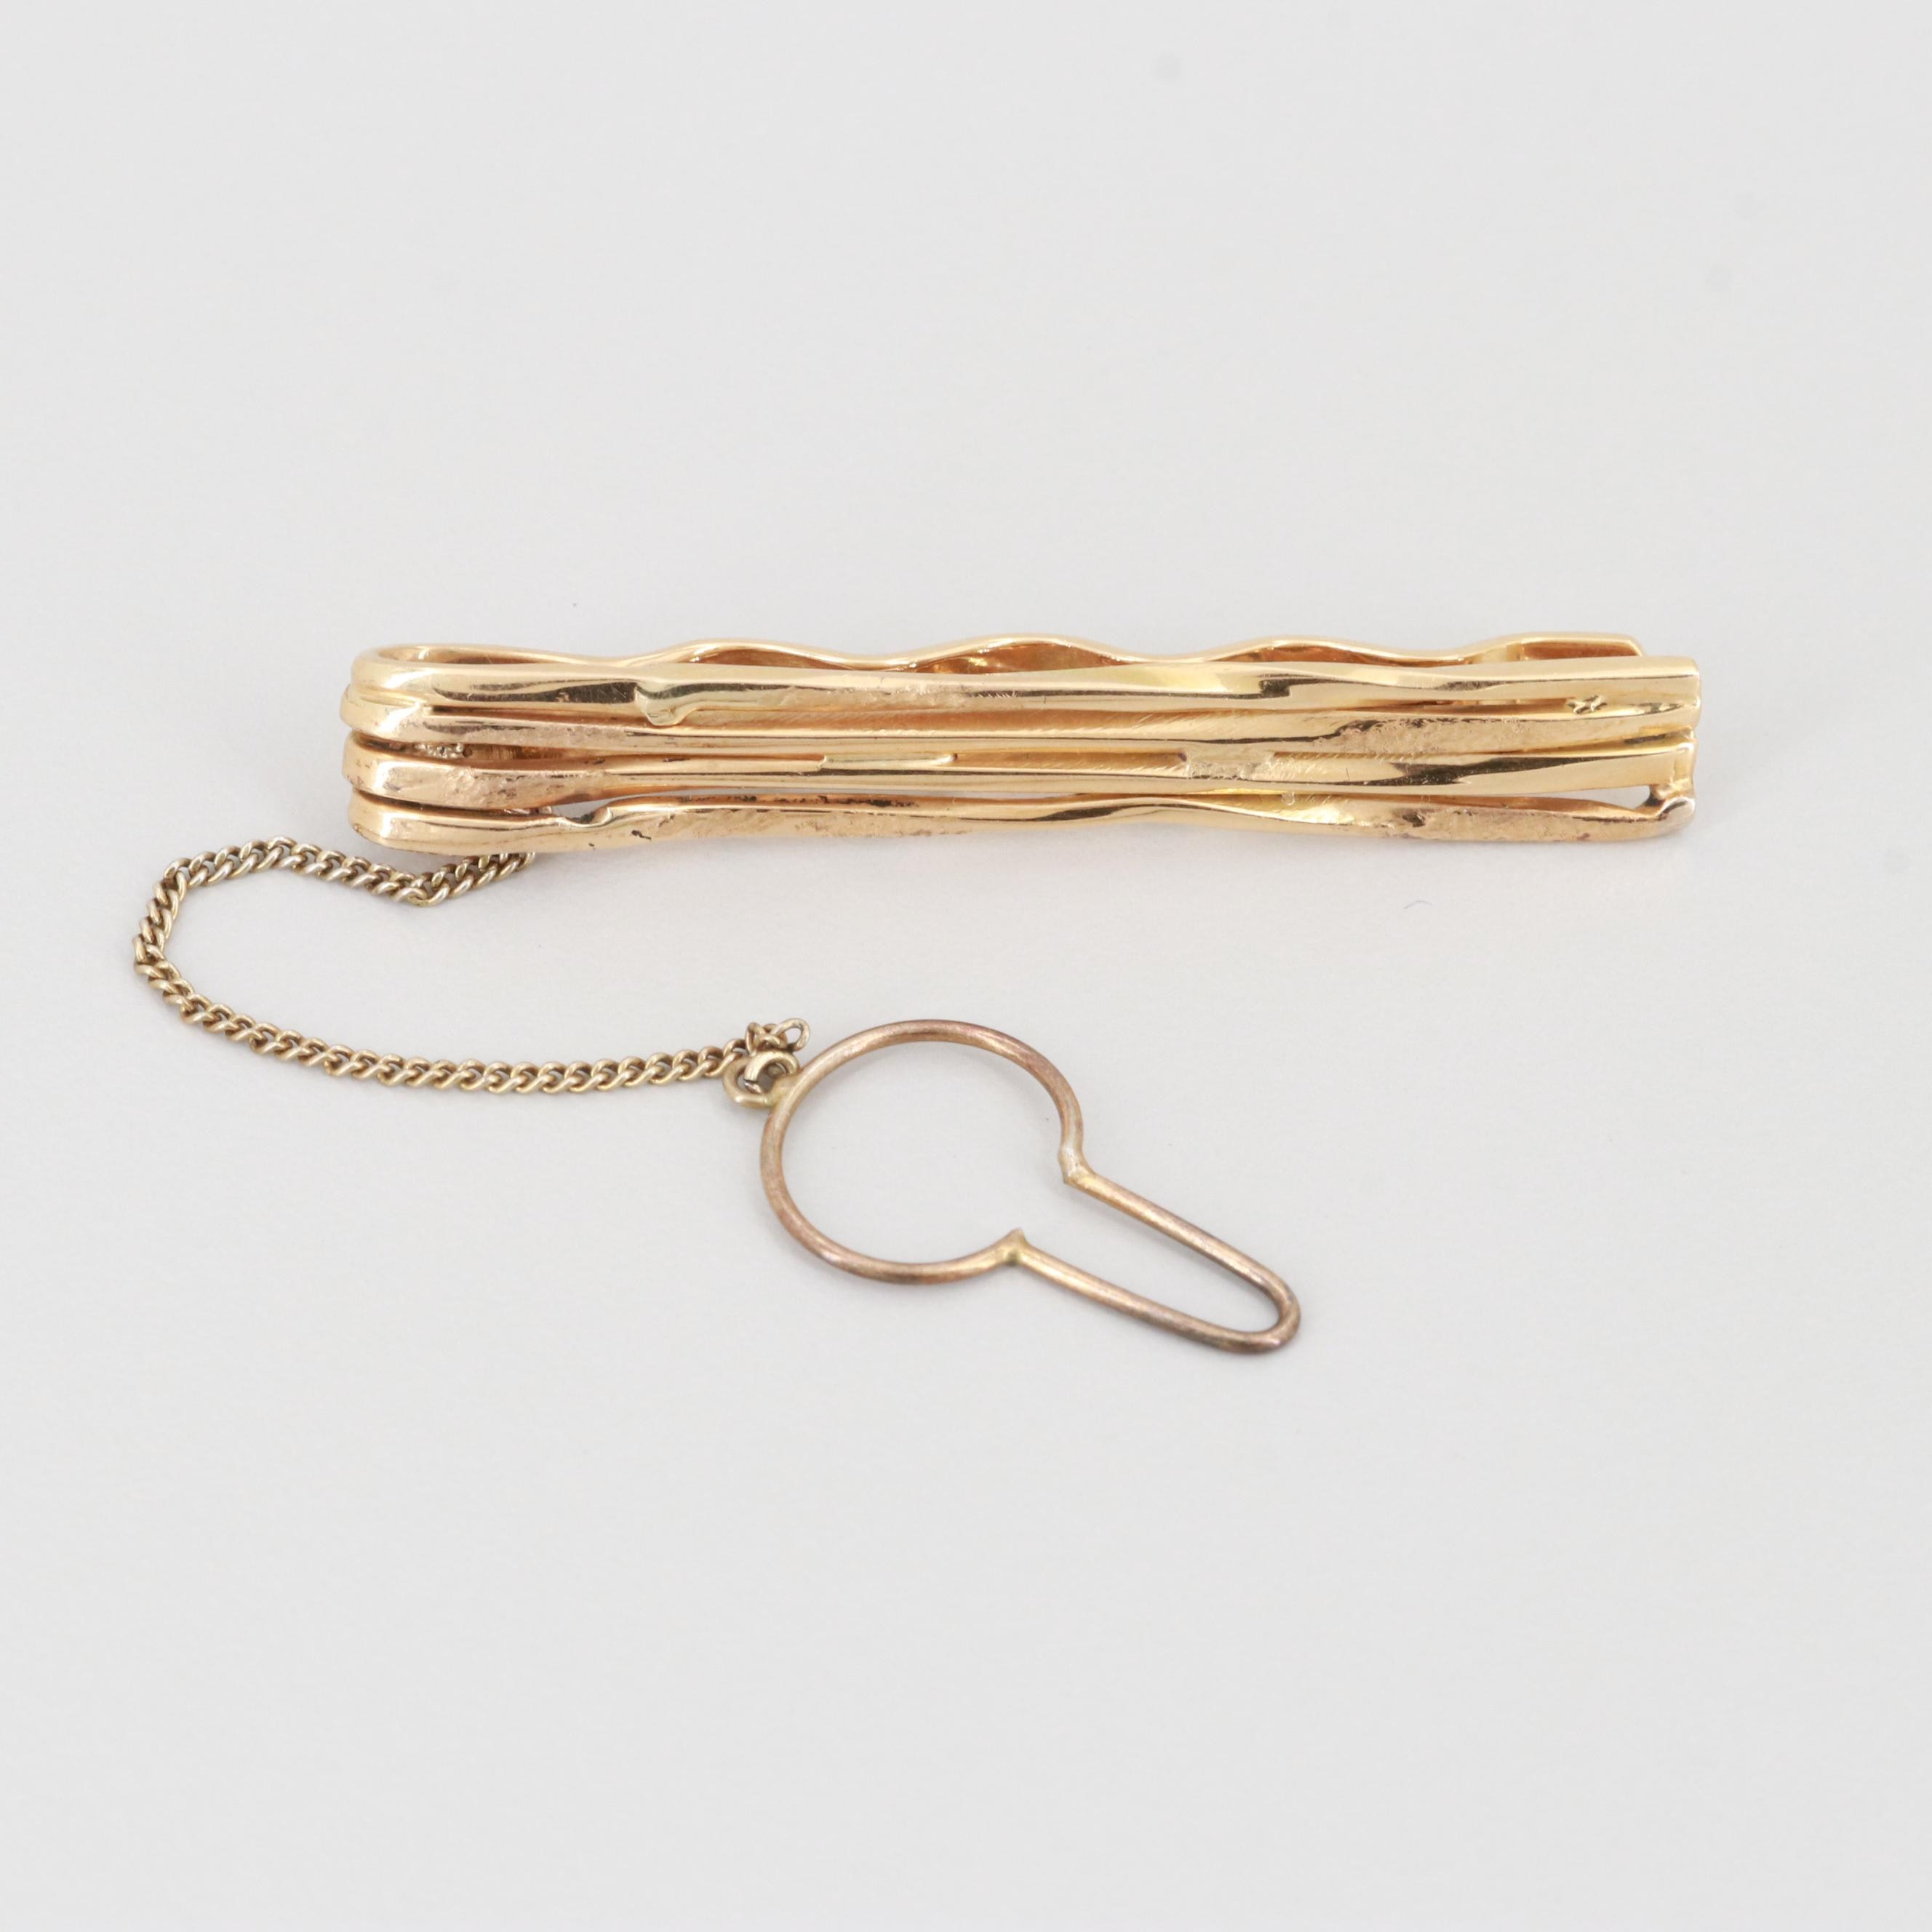 18K Yellow Gold and Sterling Silver Tie Bar